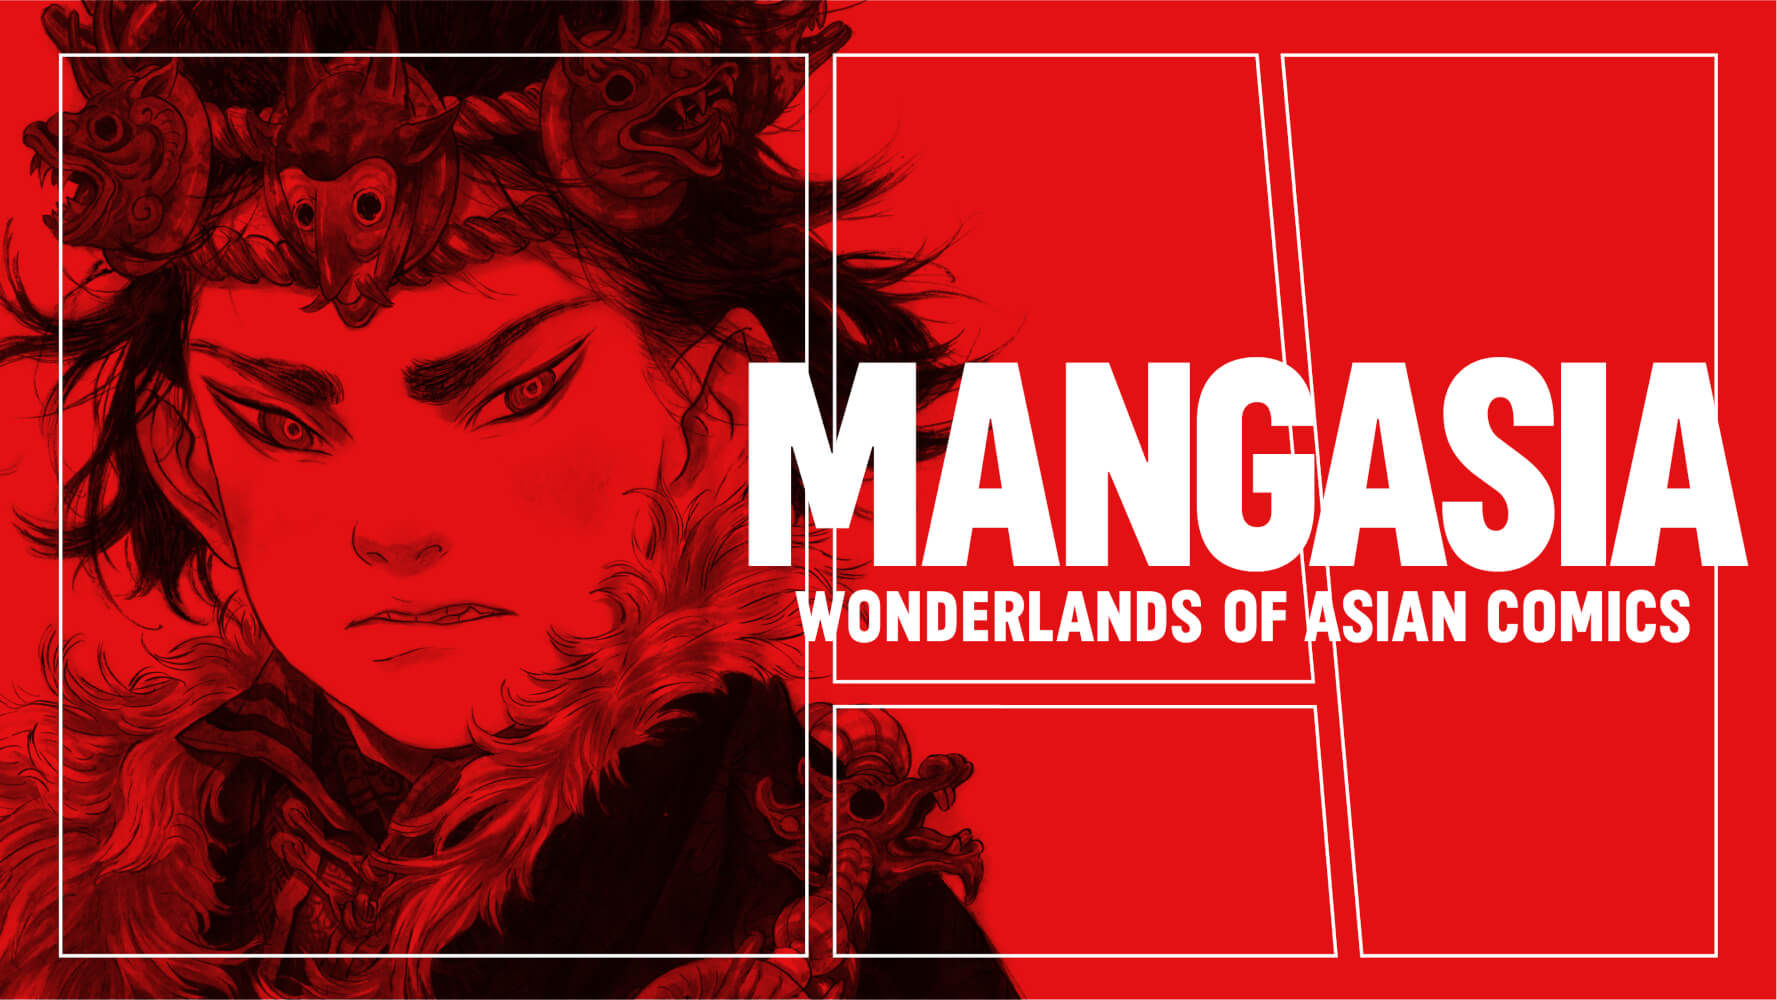 Mangasia: Wonderlands of Asian Comics